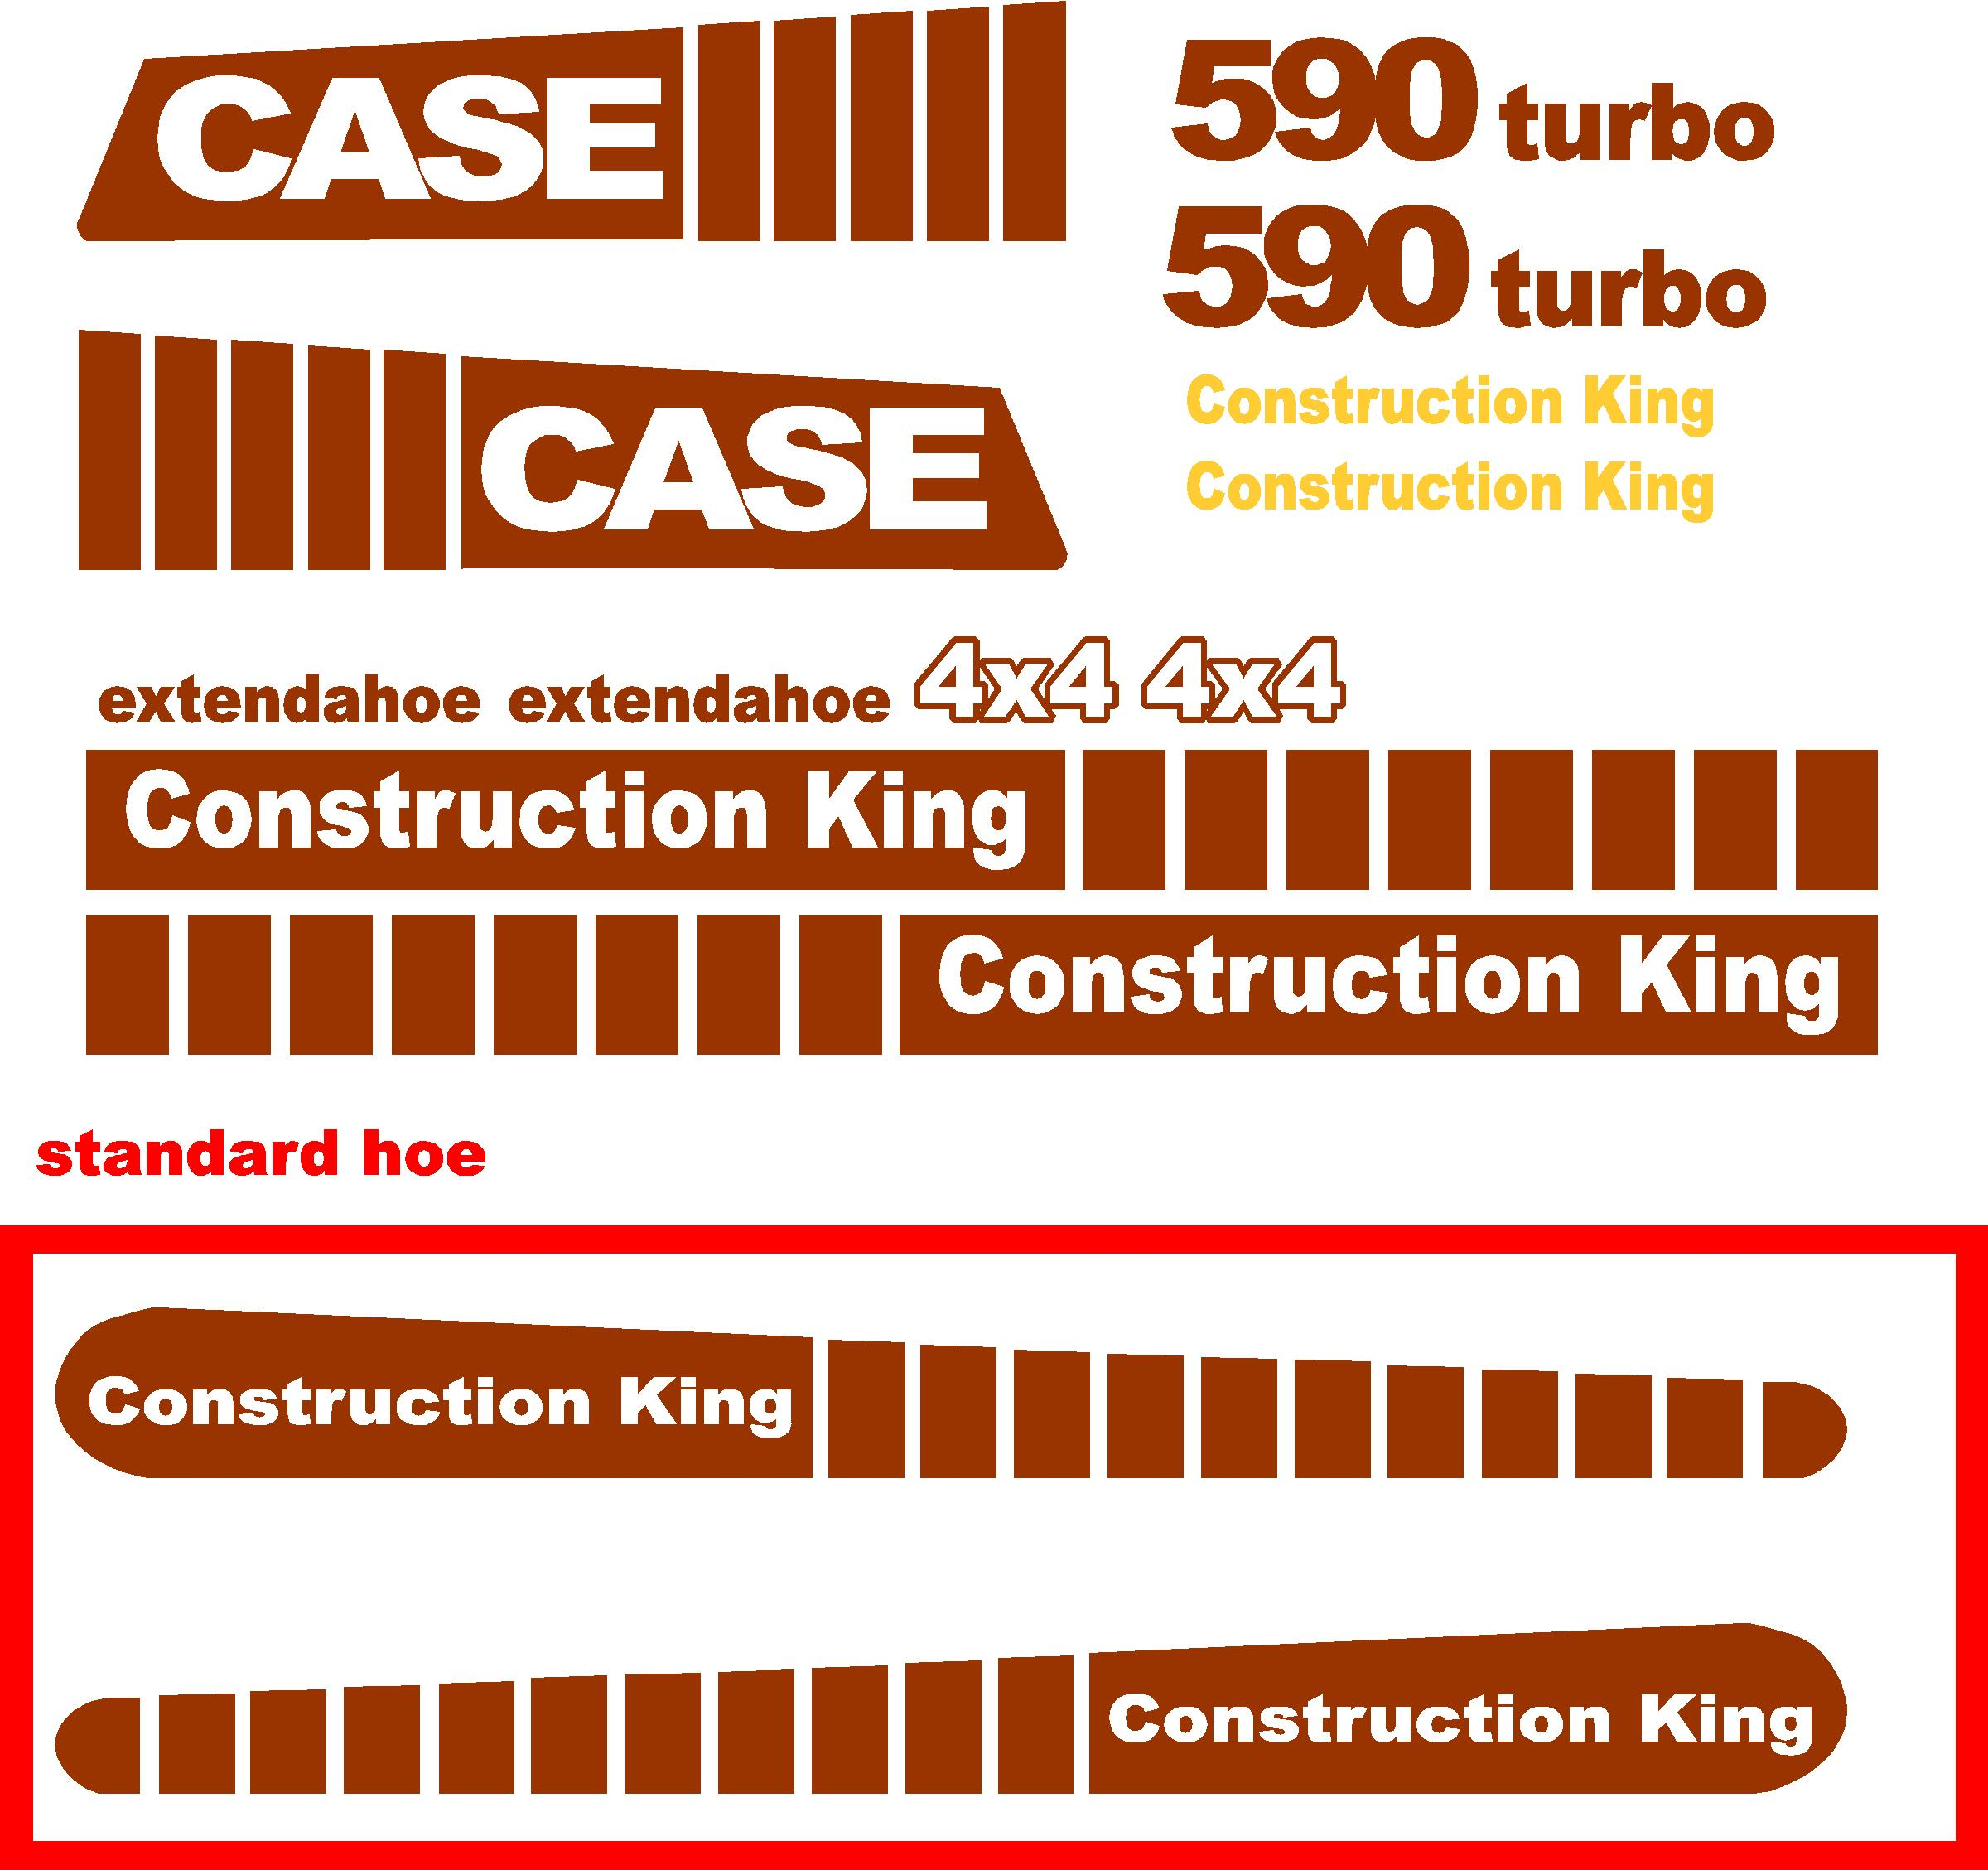 Decal Kits Product : Case turbo extendahoe new replacement decal kit